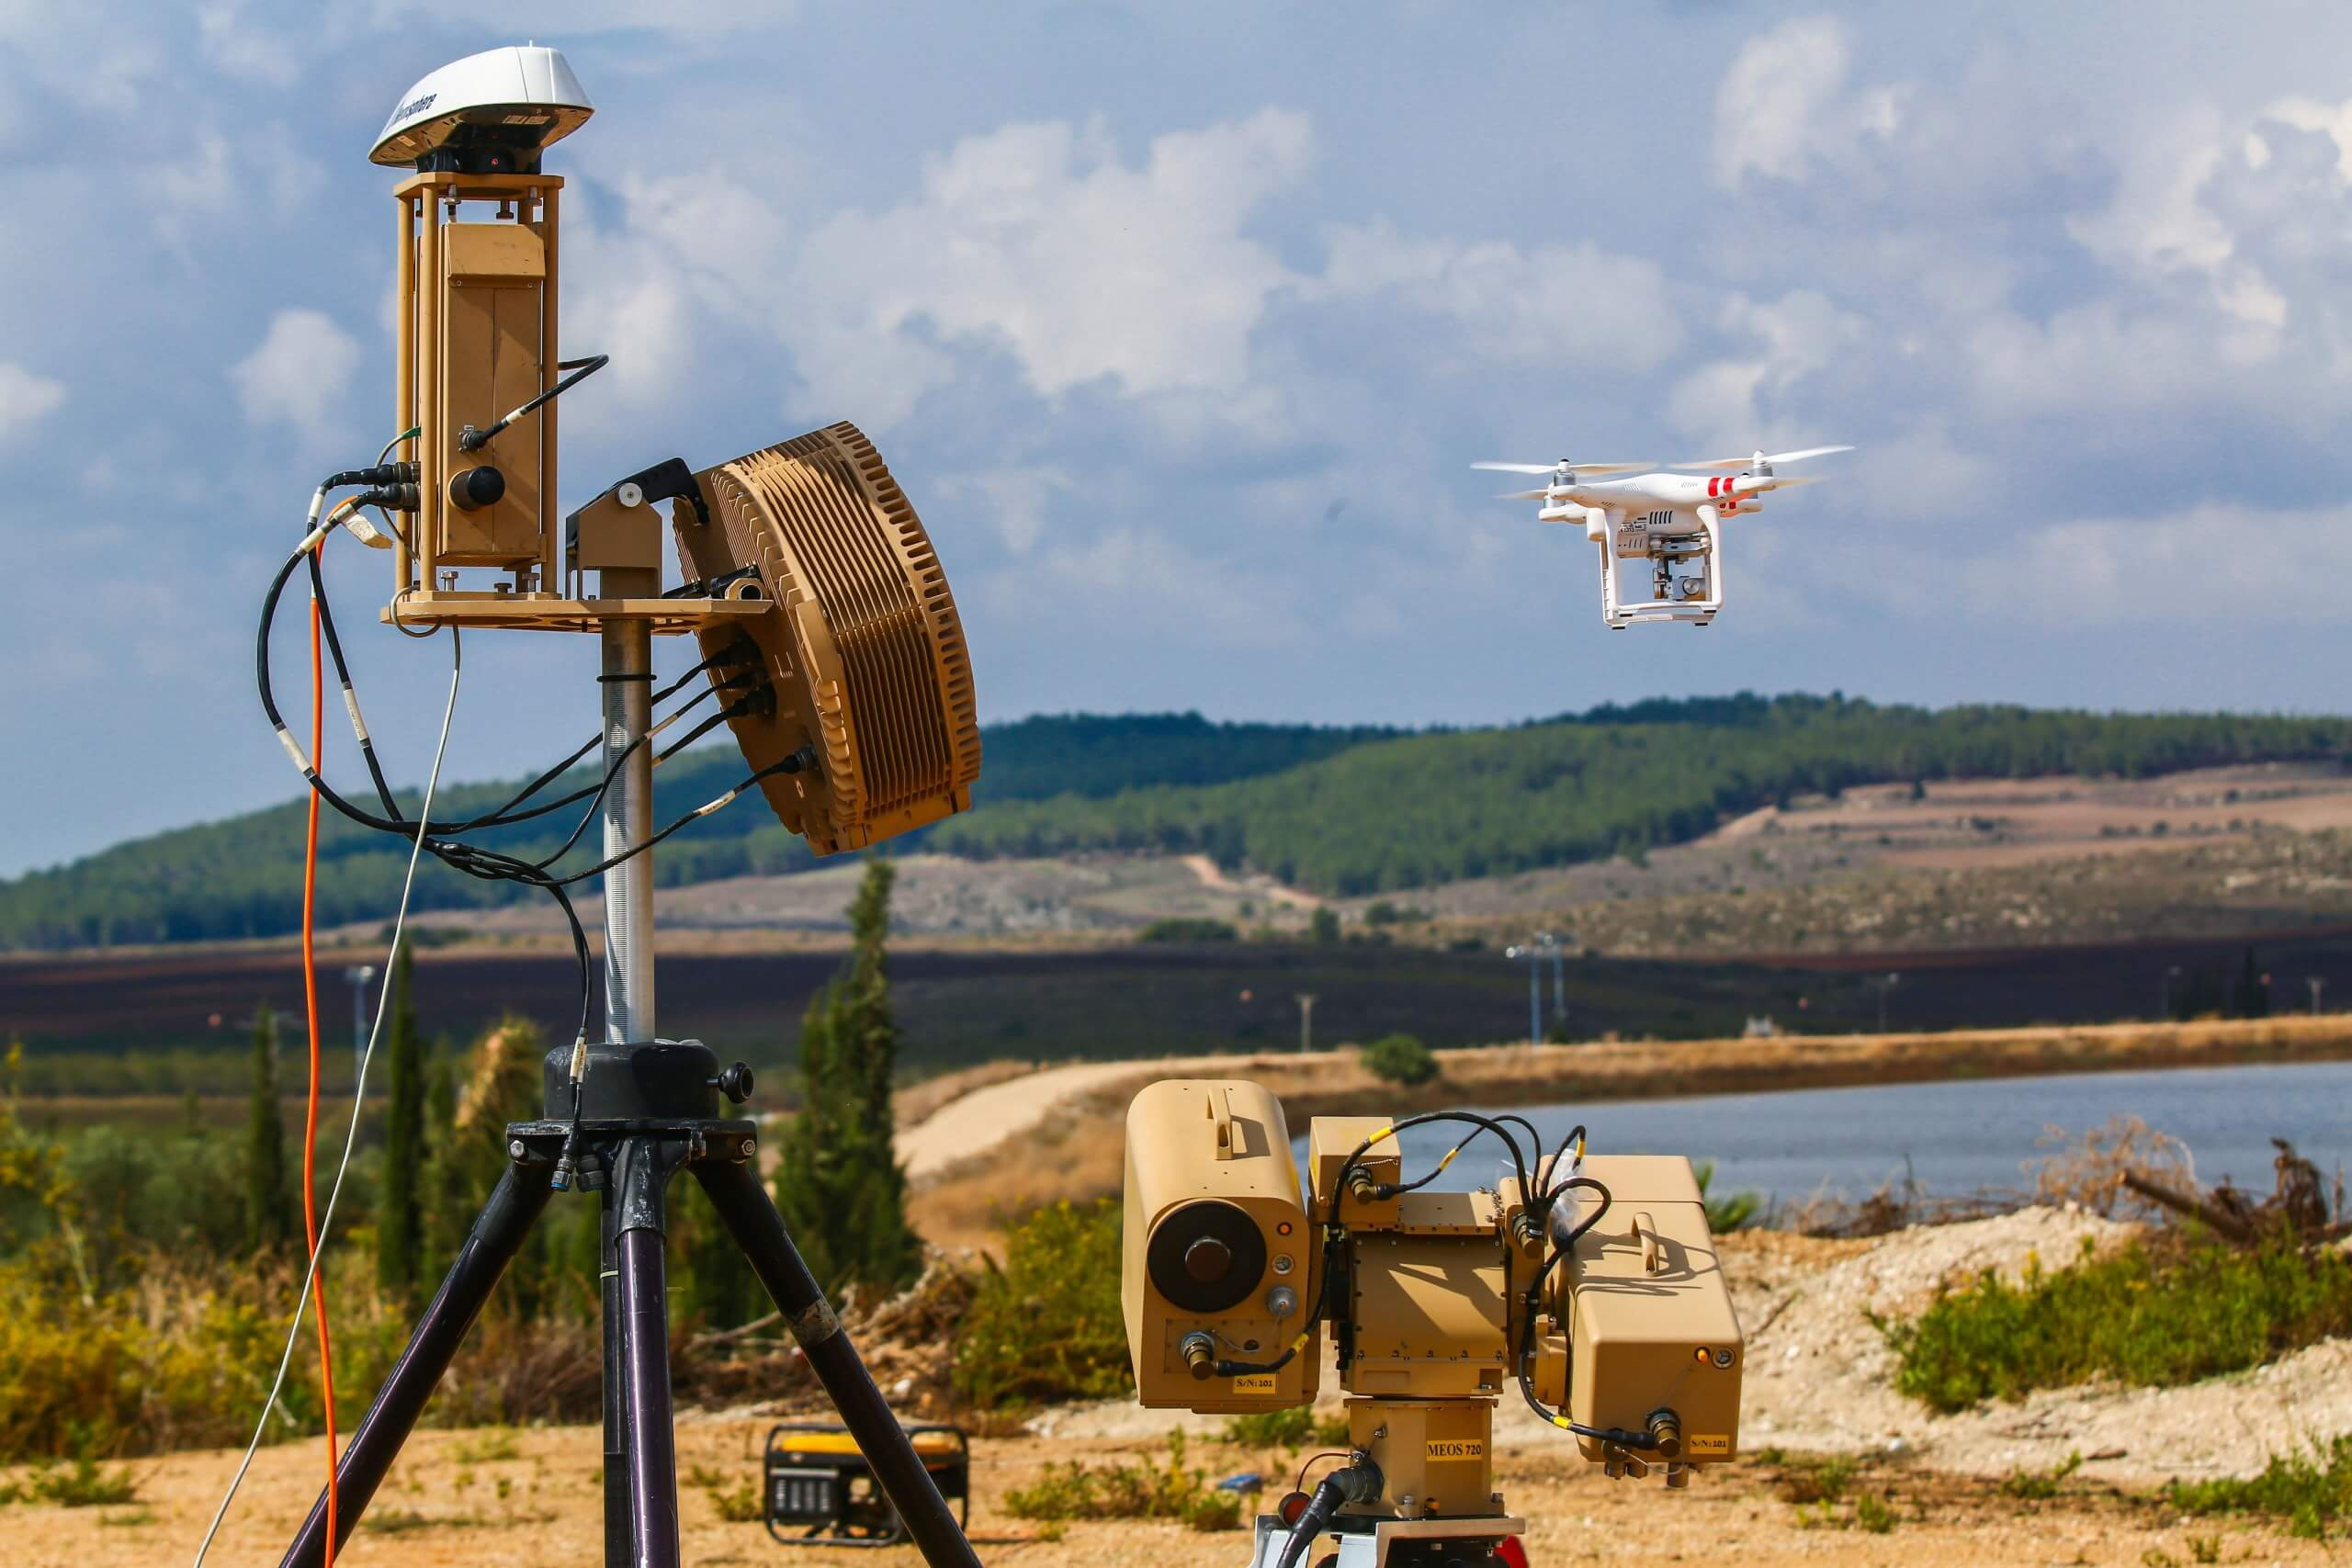 London airports are investing millions in military-grade drone defense systems